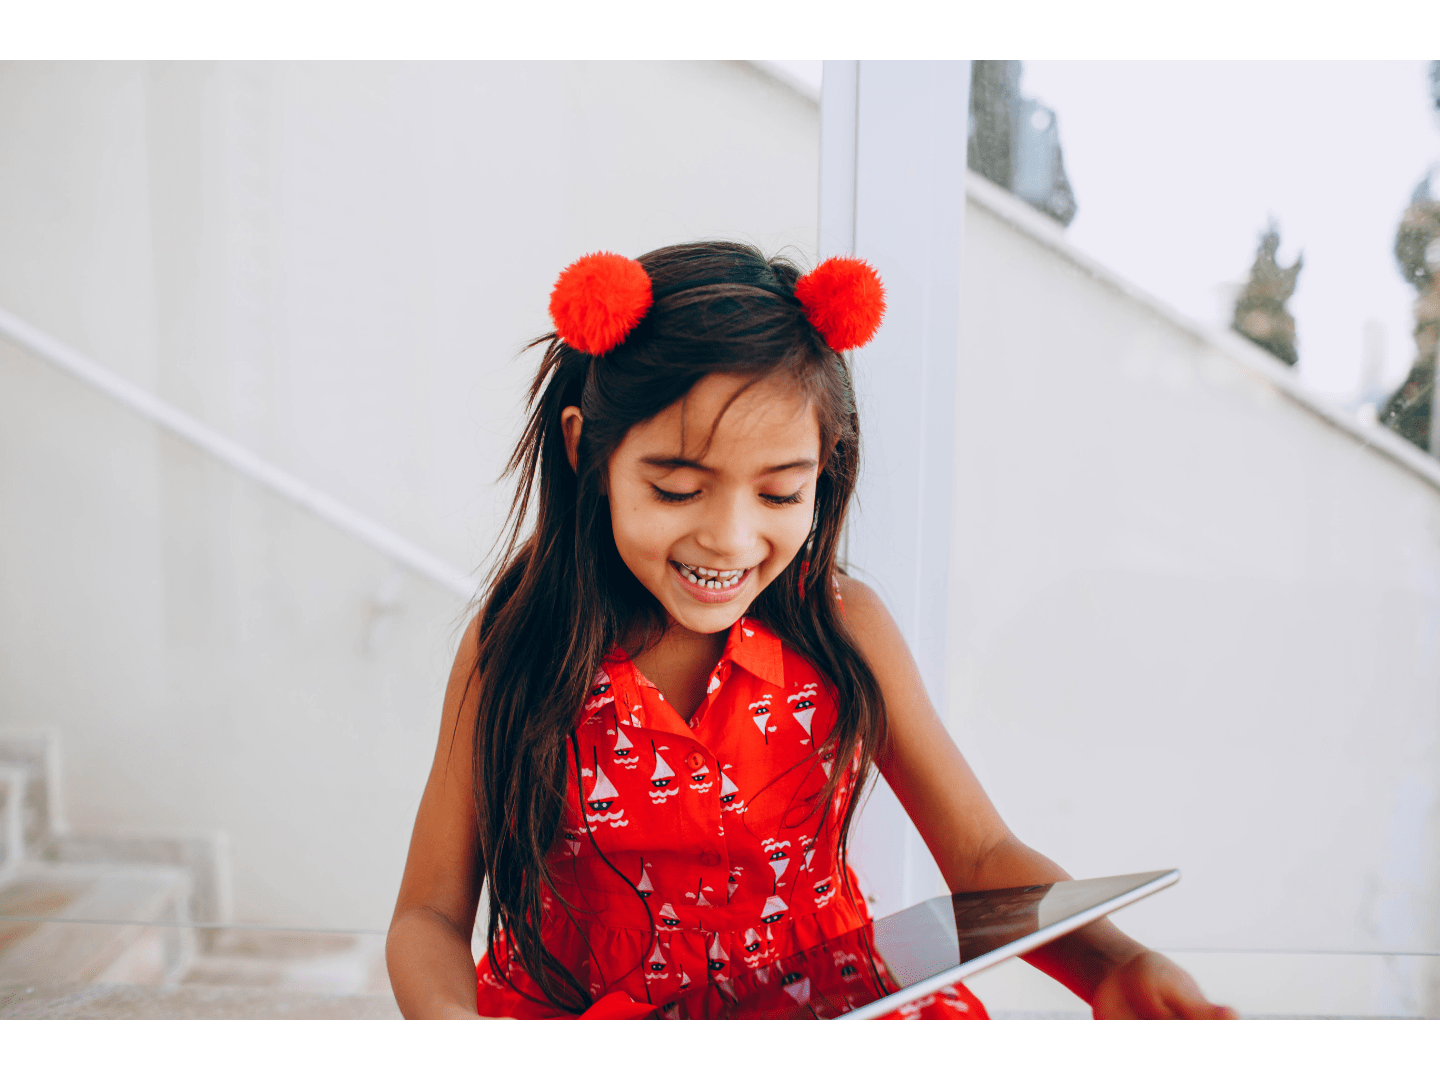 Cheerful child looking at a tablet device